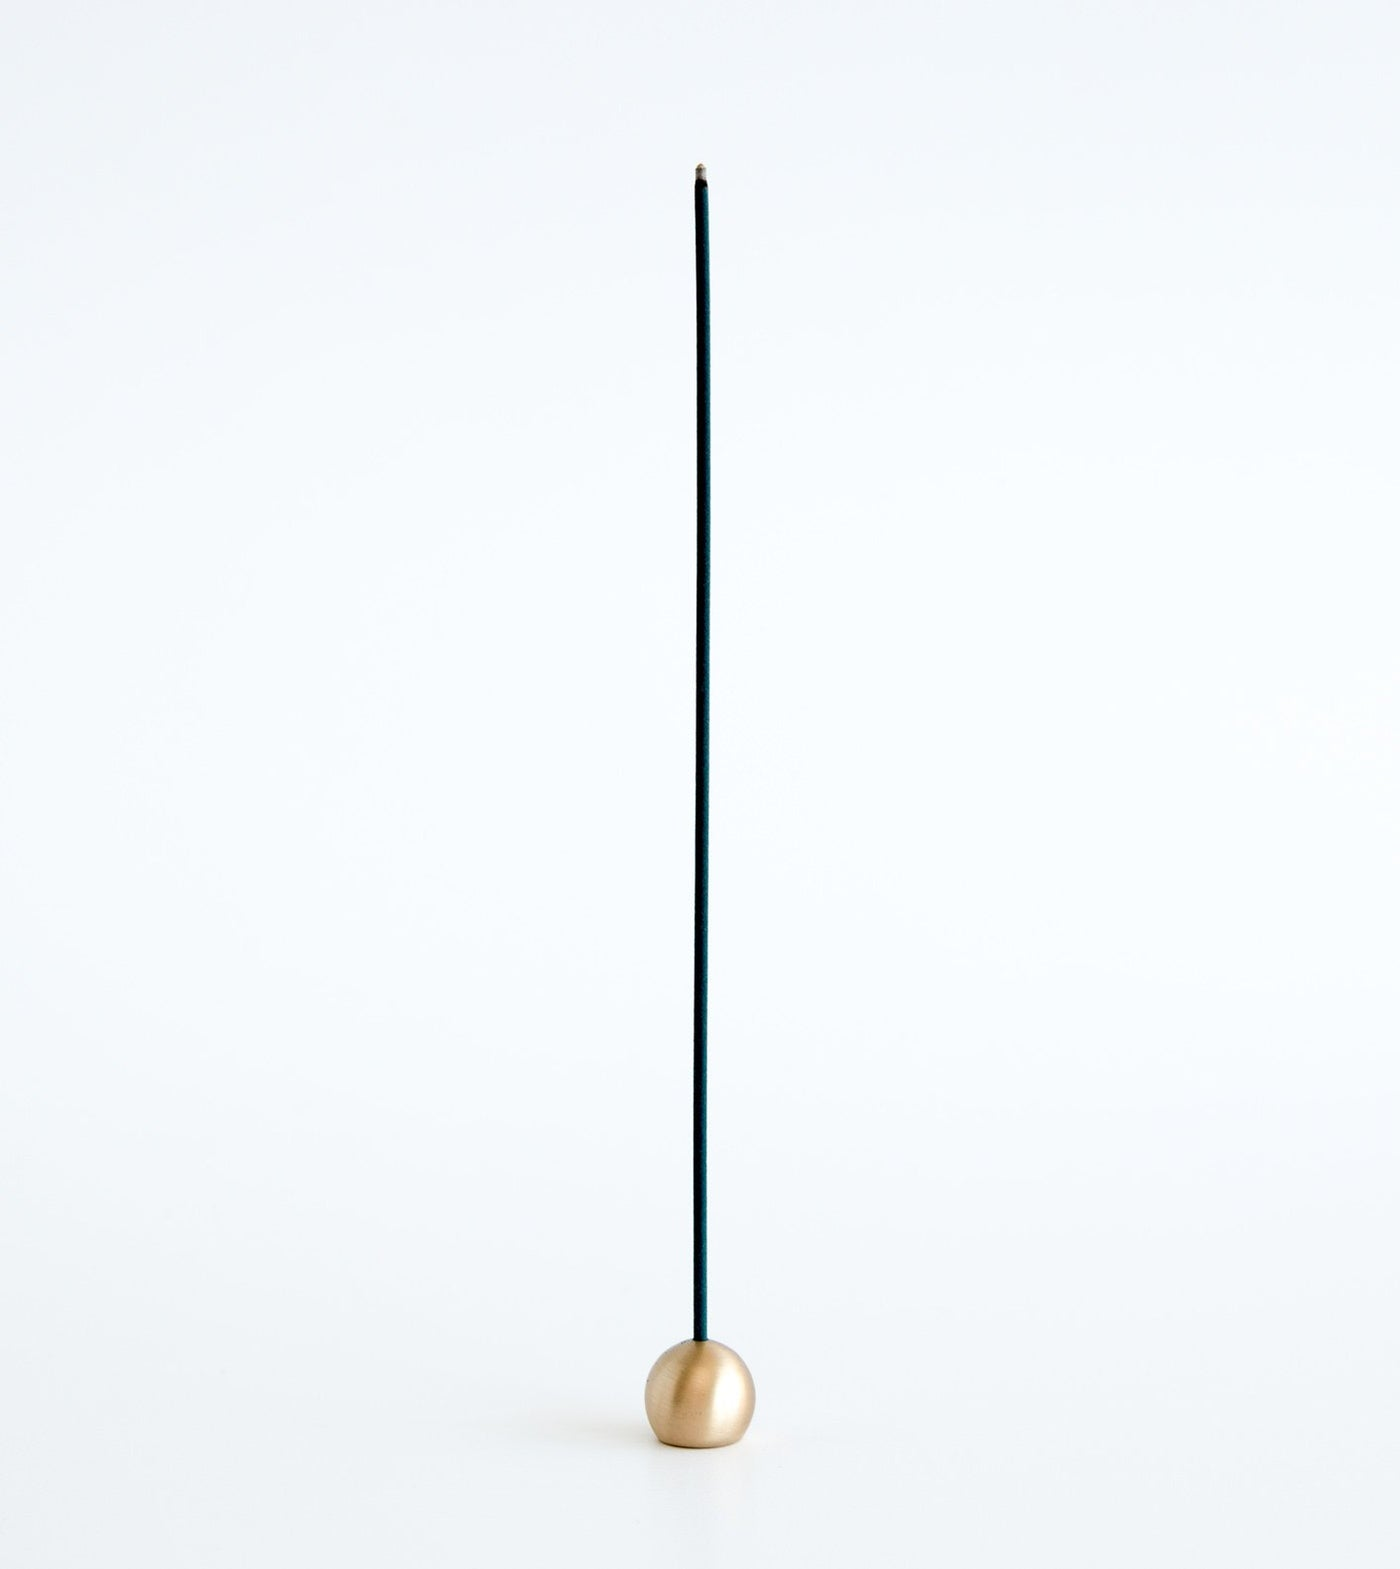 incense holder, brass incense holder, minimalist incense holder, incense holder australia